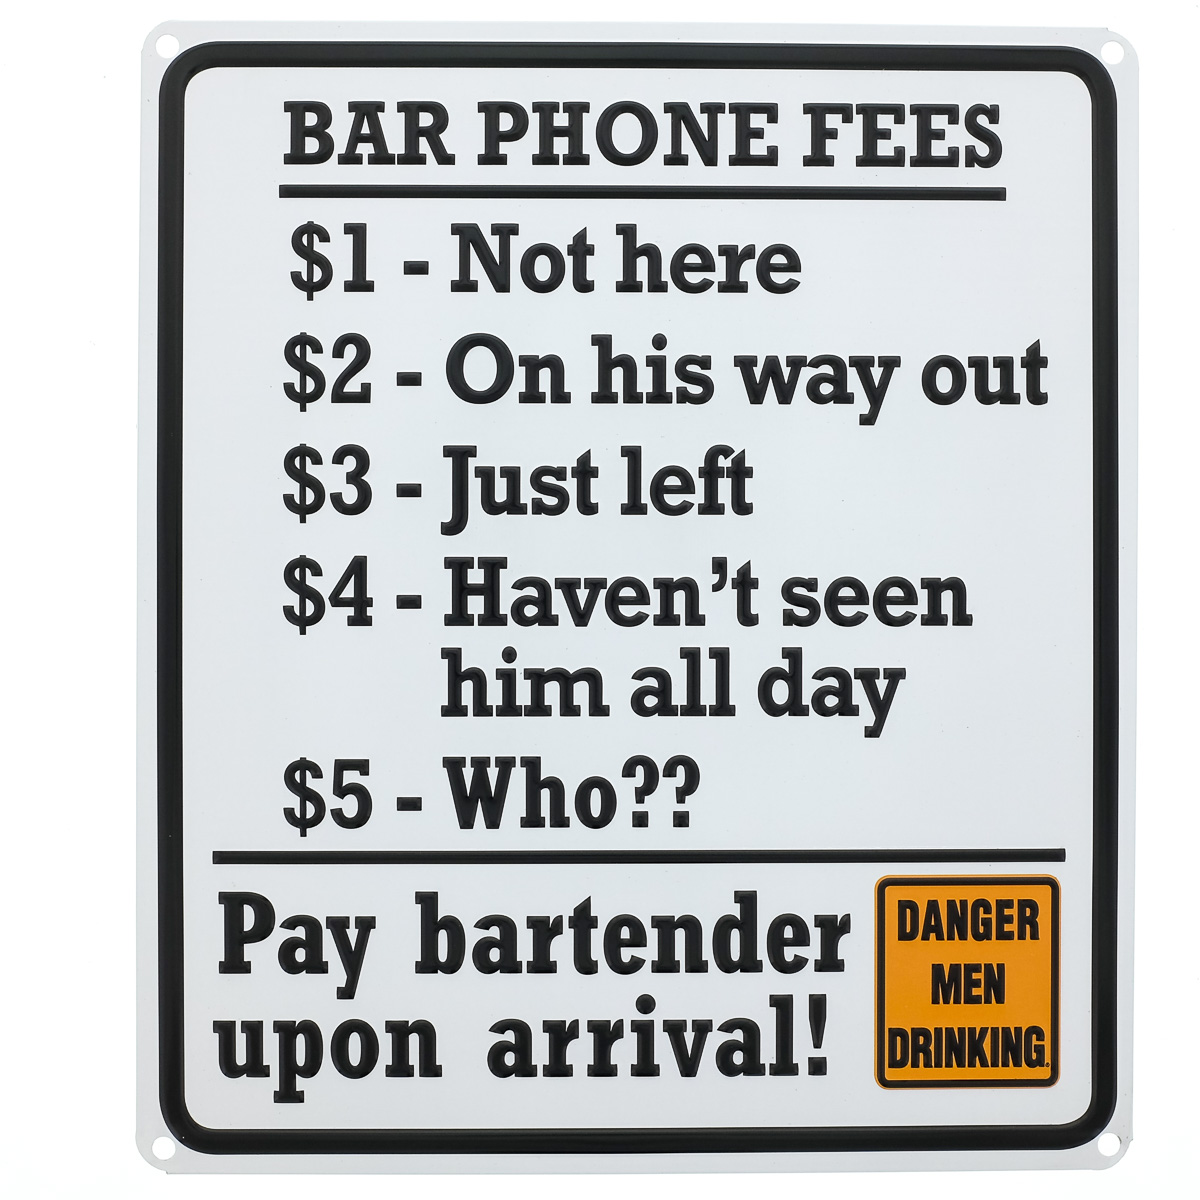 Phone Quotes Bar Phone Fees Funny Quotes Metal Sign Man Cave Game Room Decor